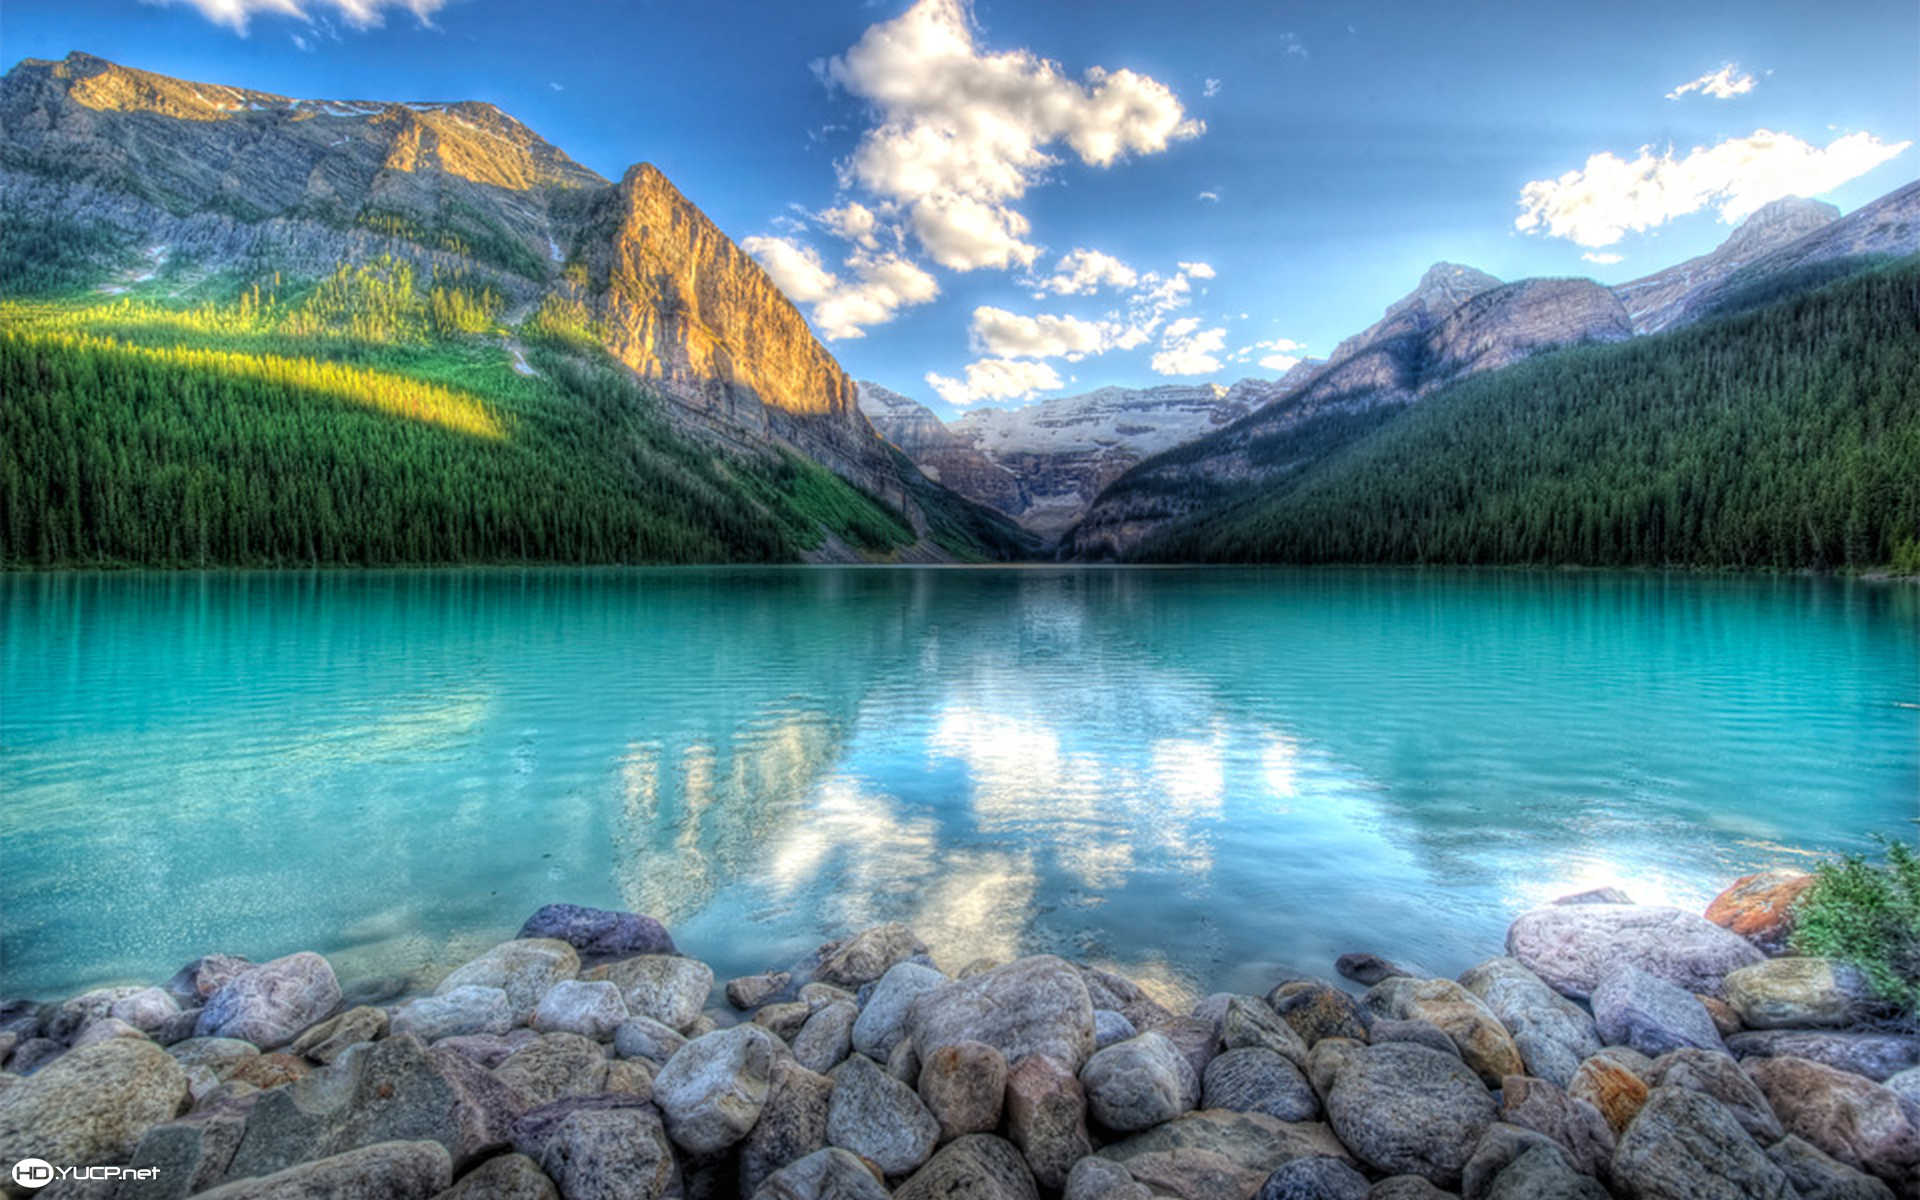 blue lake wallpaper 4k - photo #31